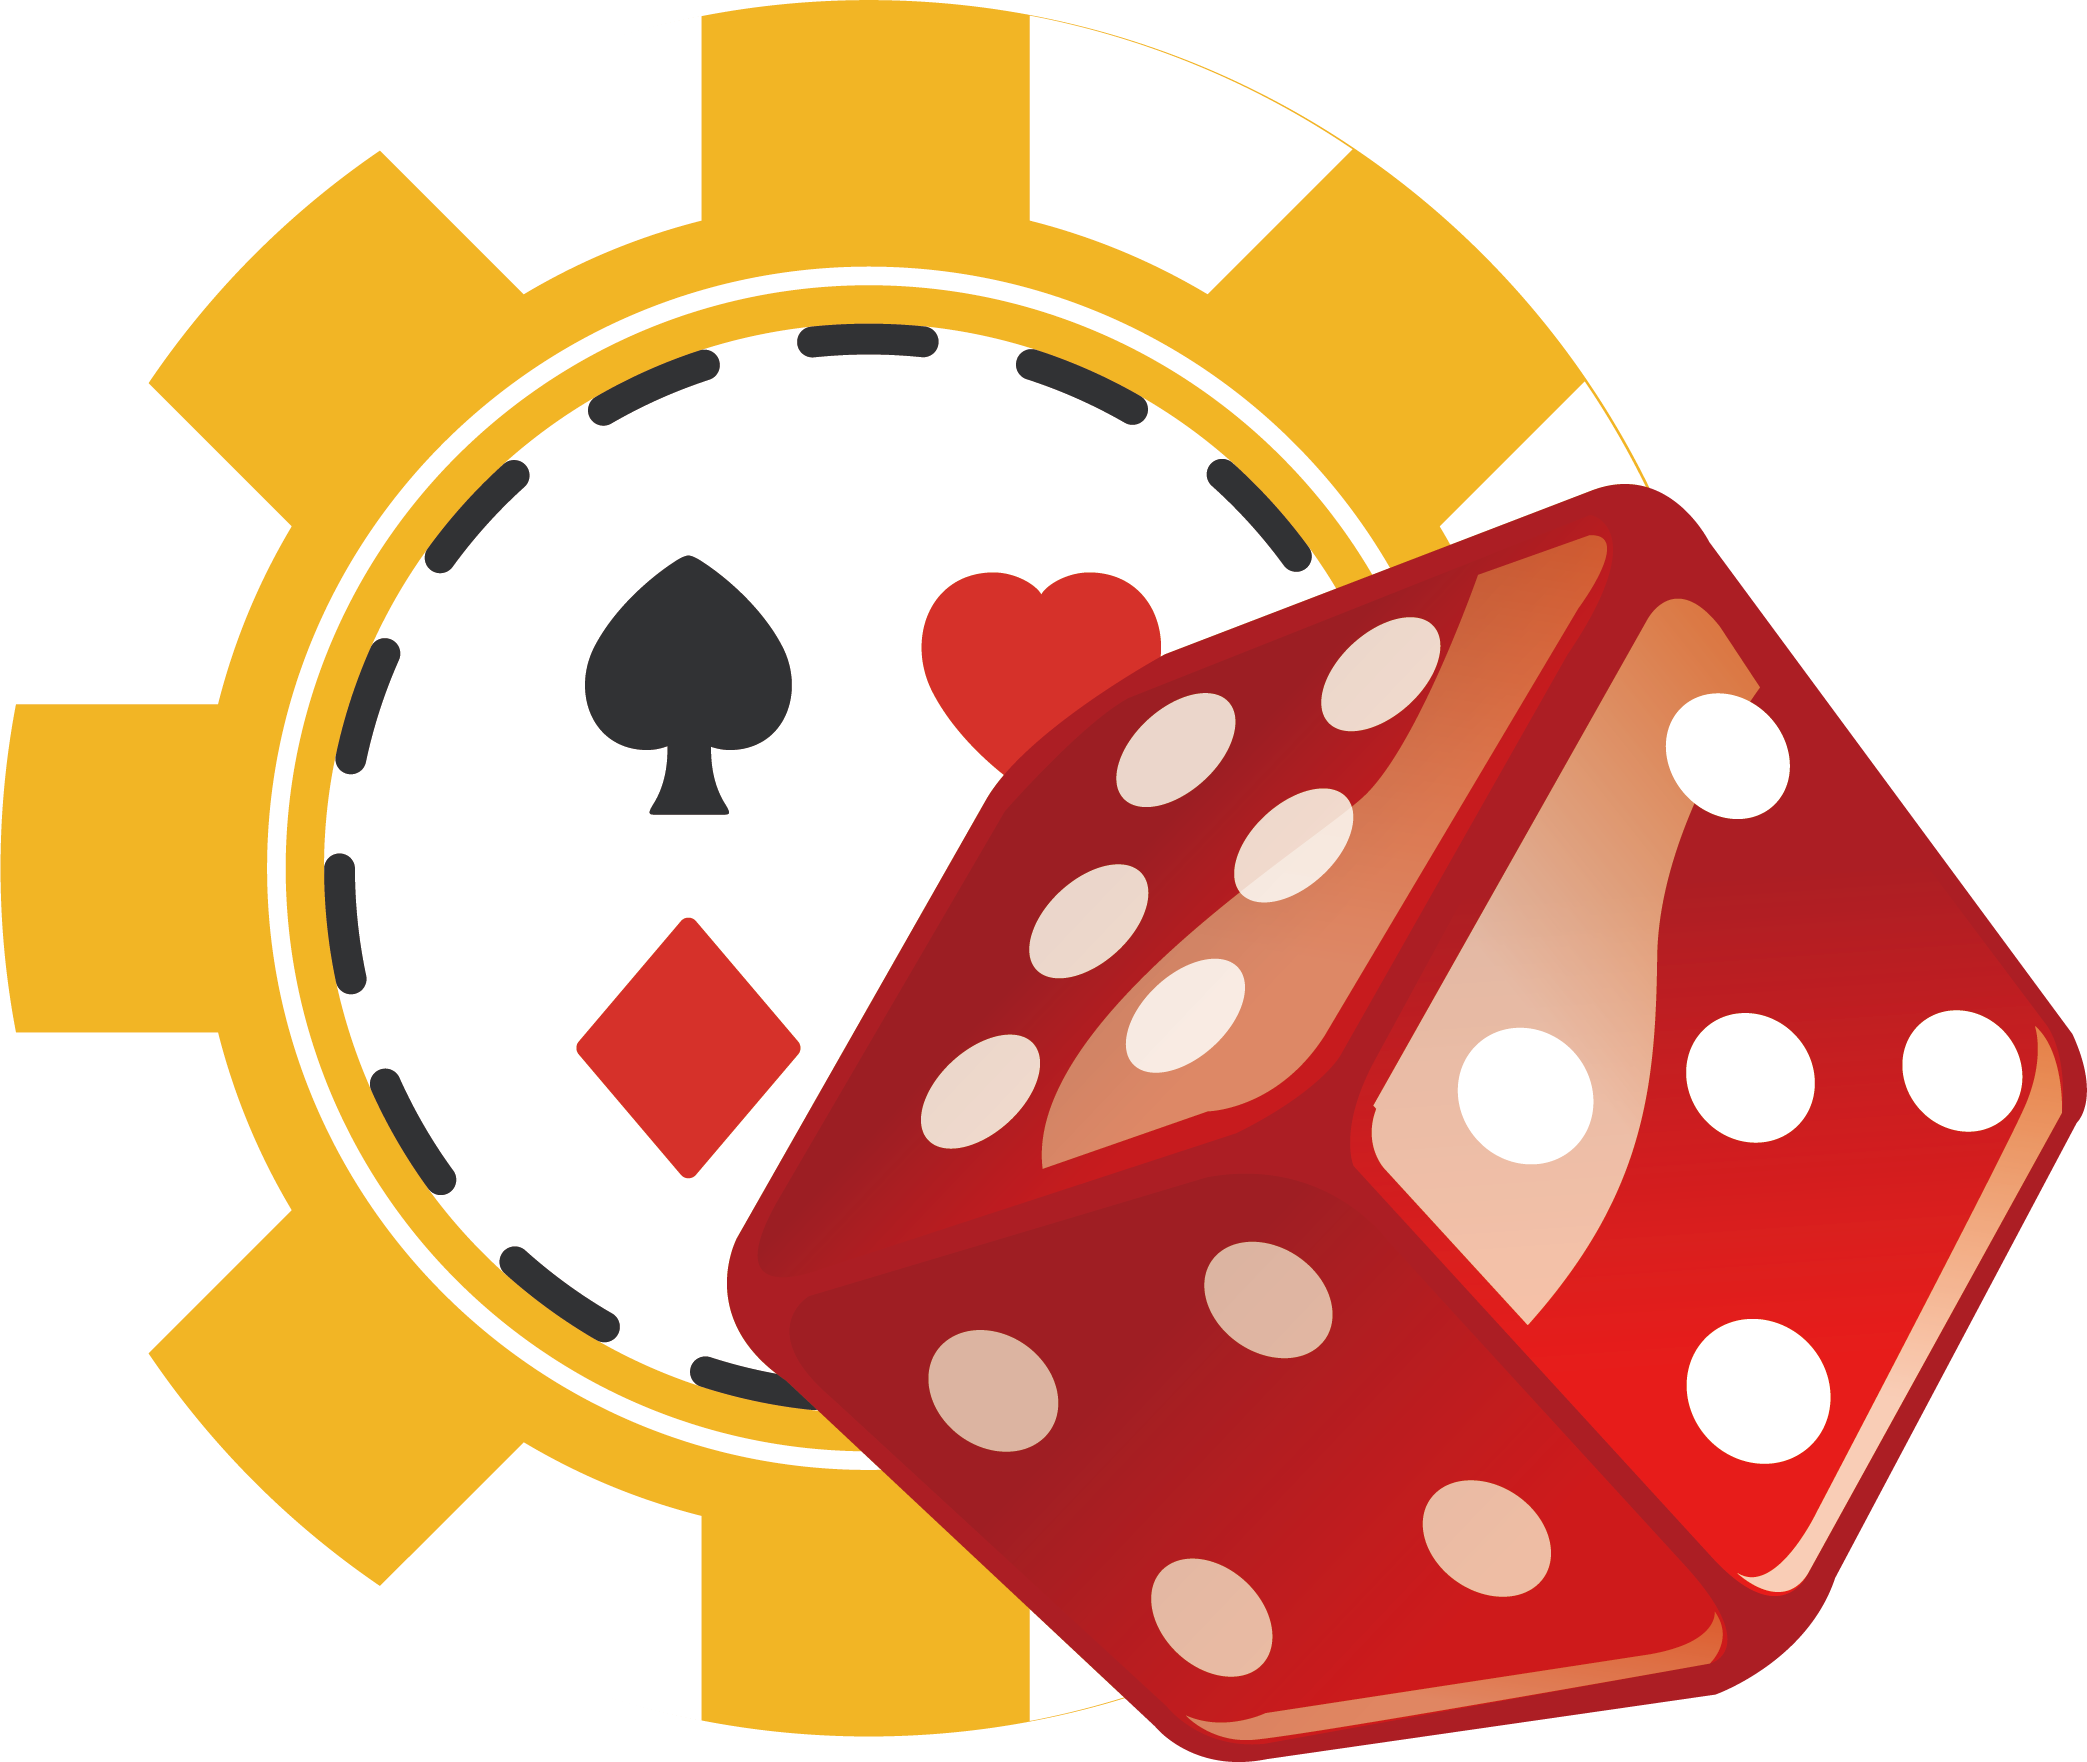 Icon nice transprent png. Dice clipart casino dice